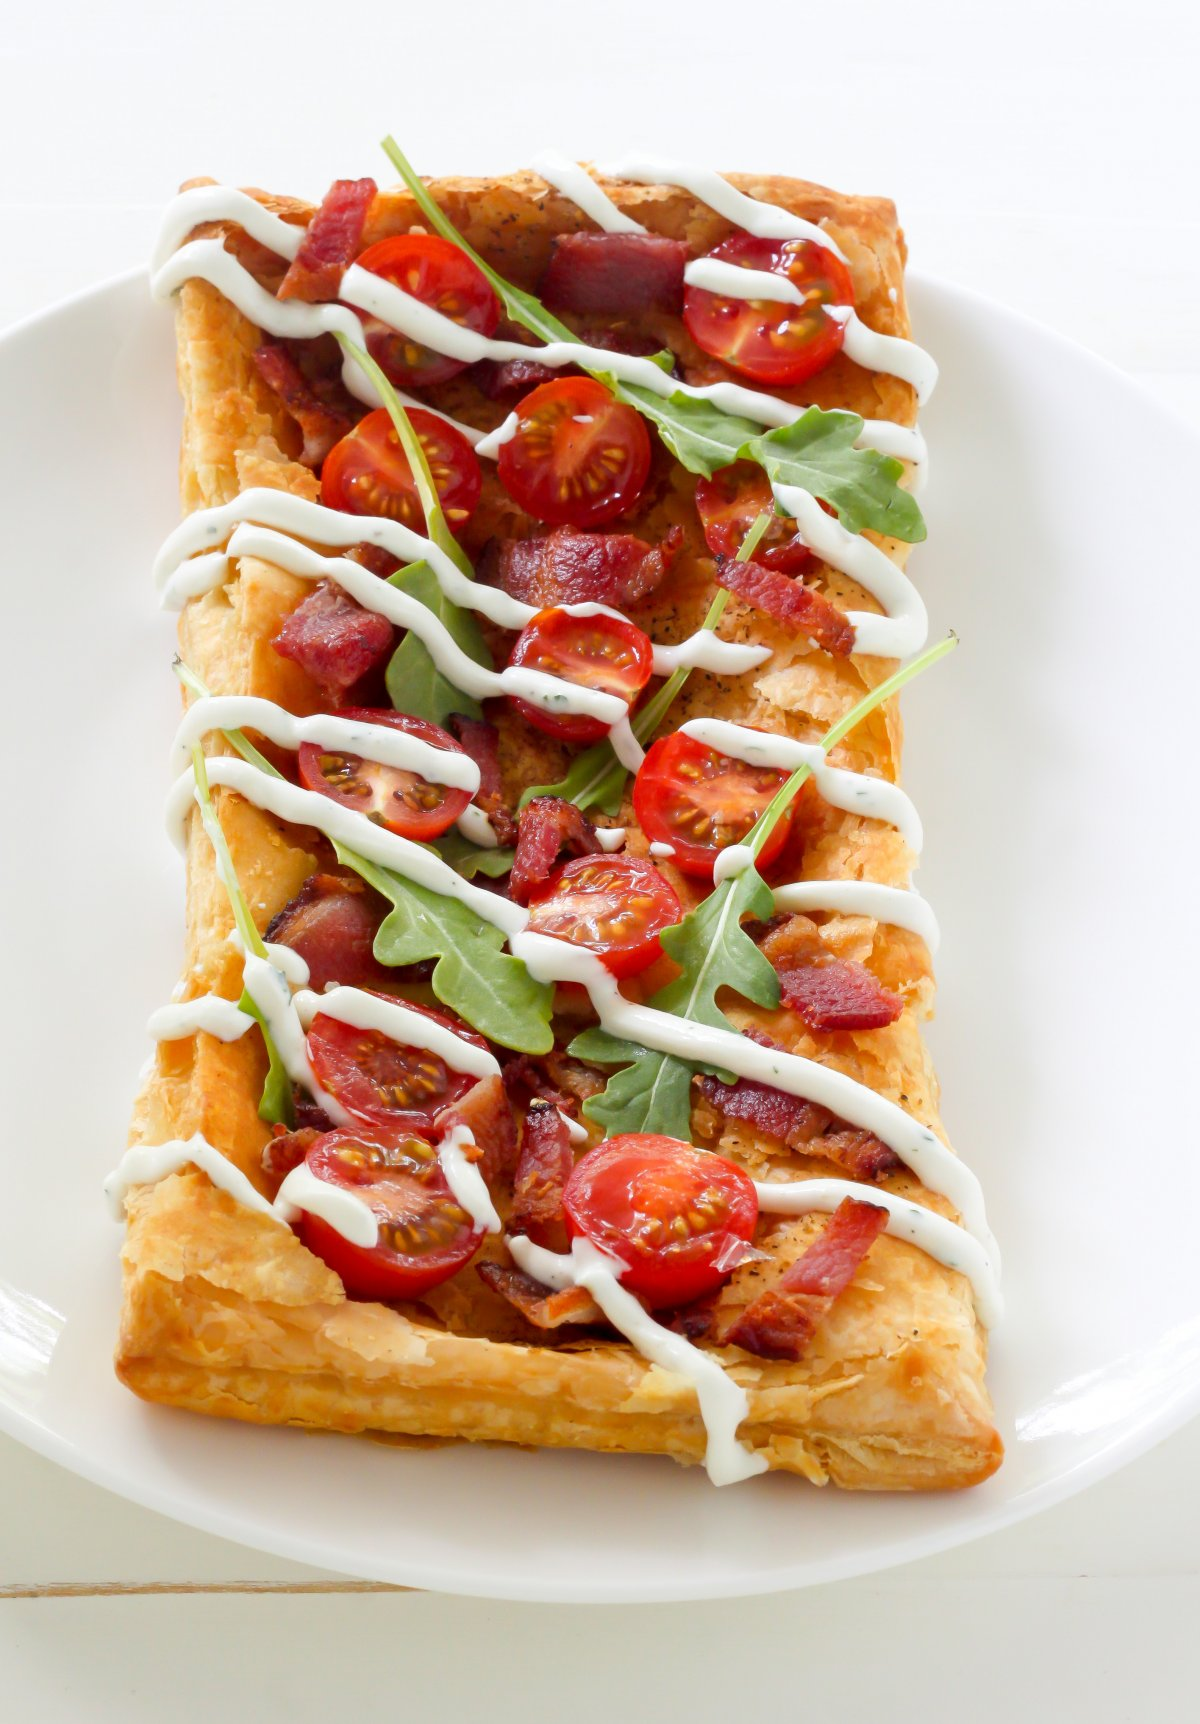 20-Minute BLT Puffed Pastry Pizza